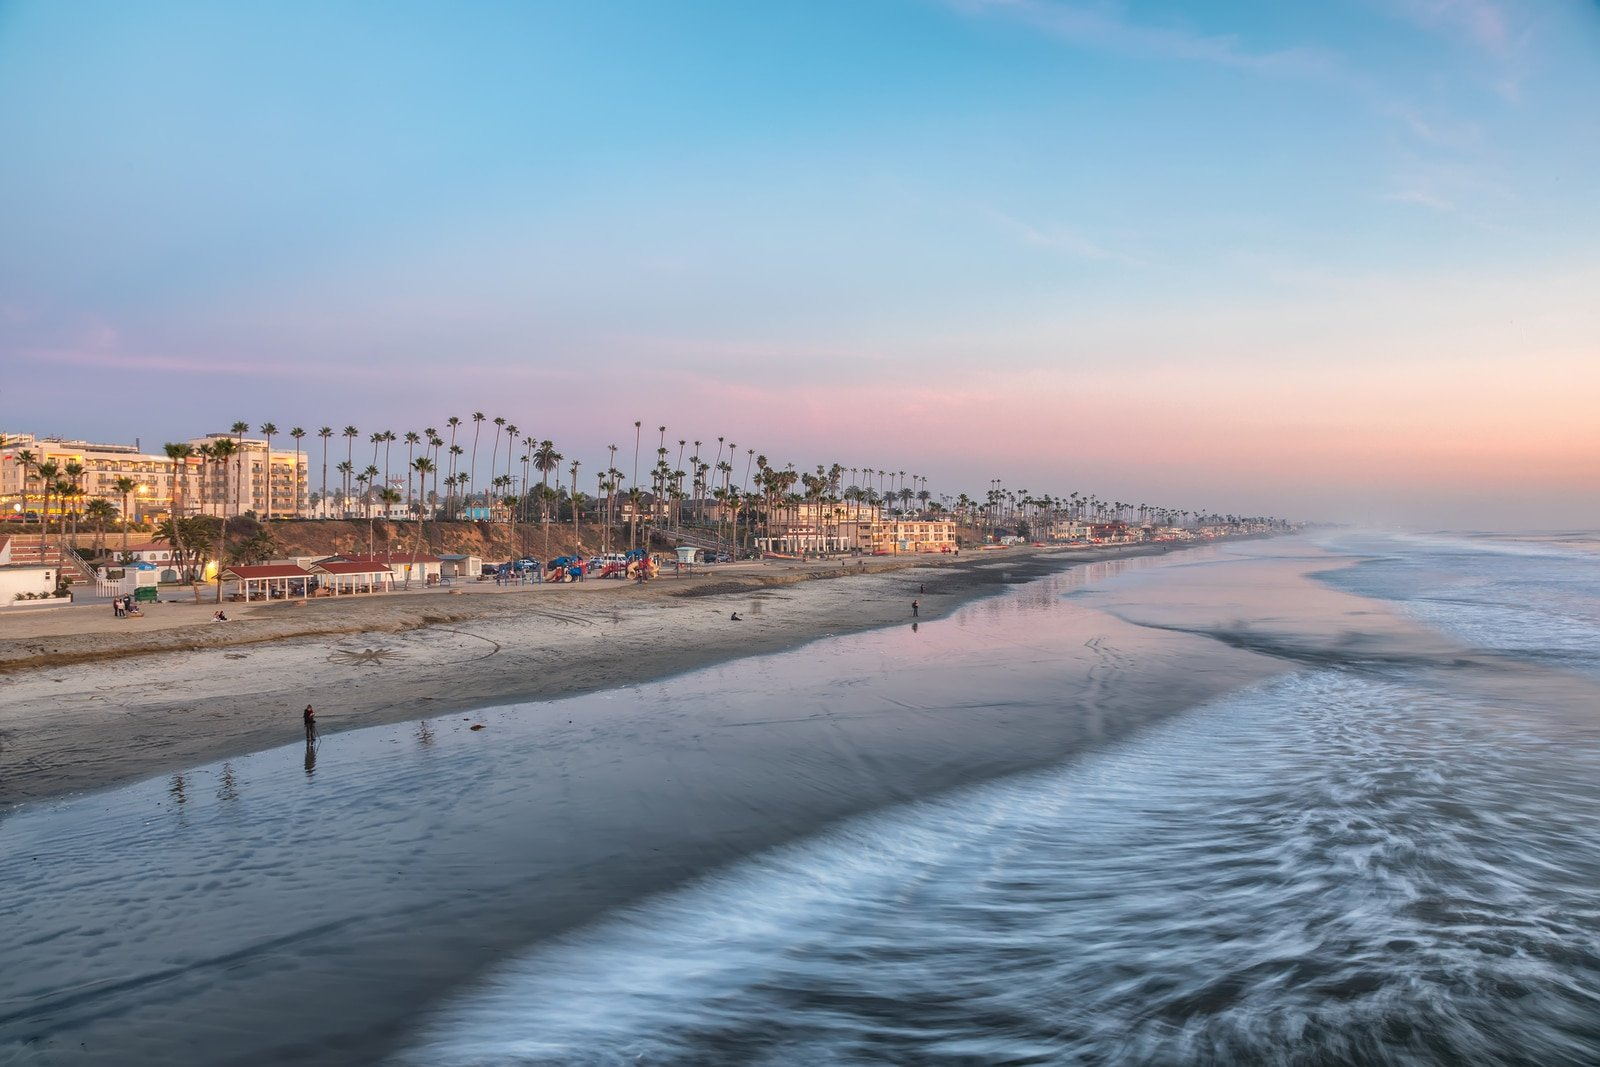 View of the Oceanside, CA beach from the pier at sunset.